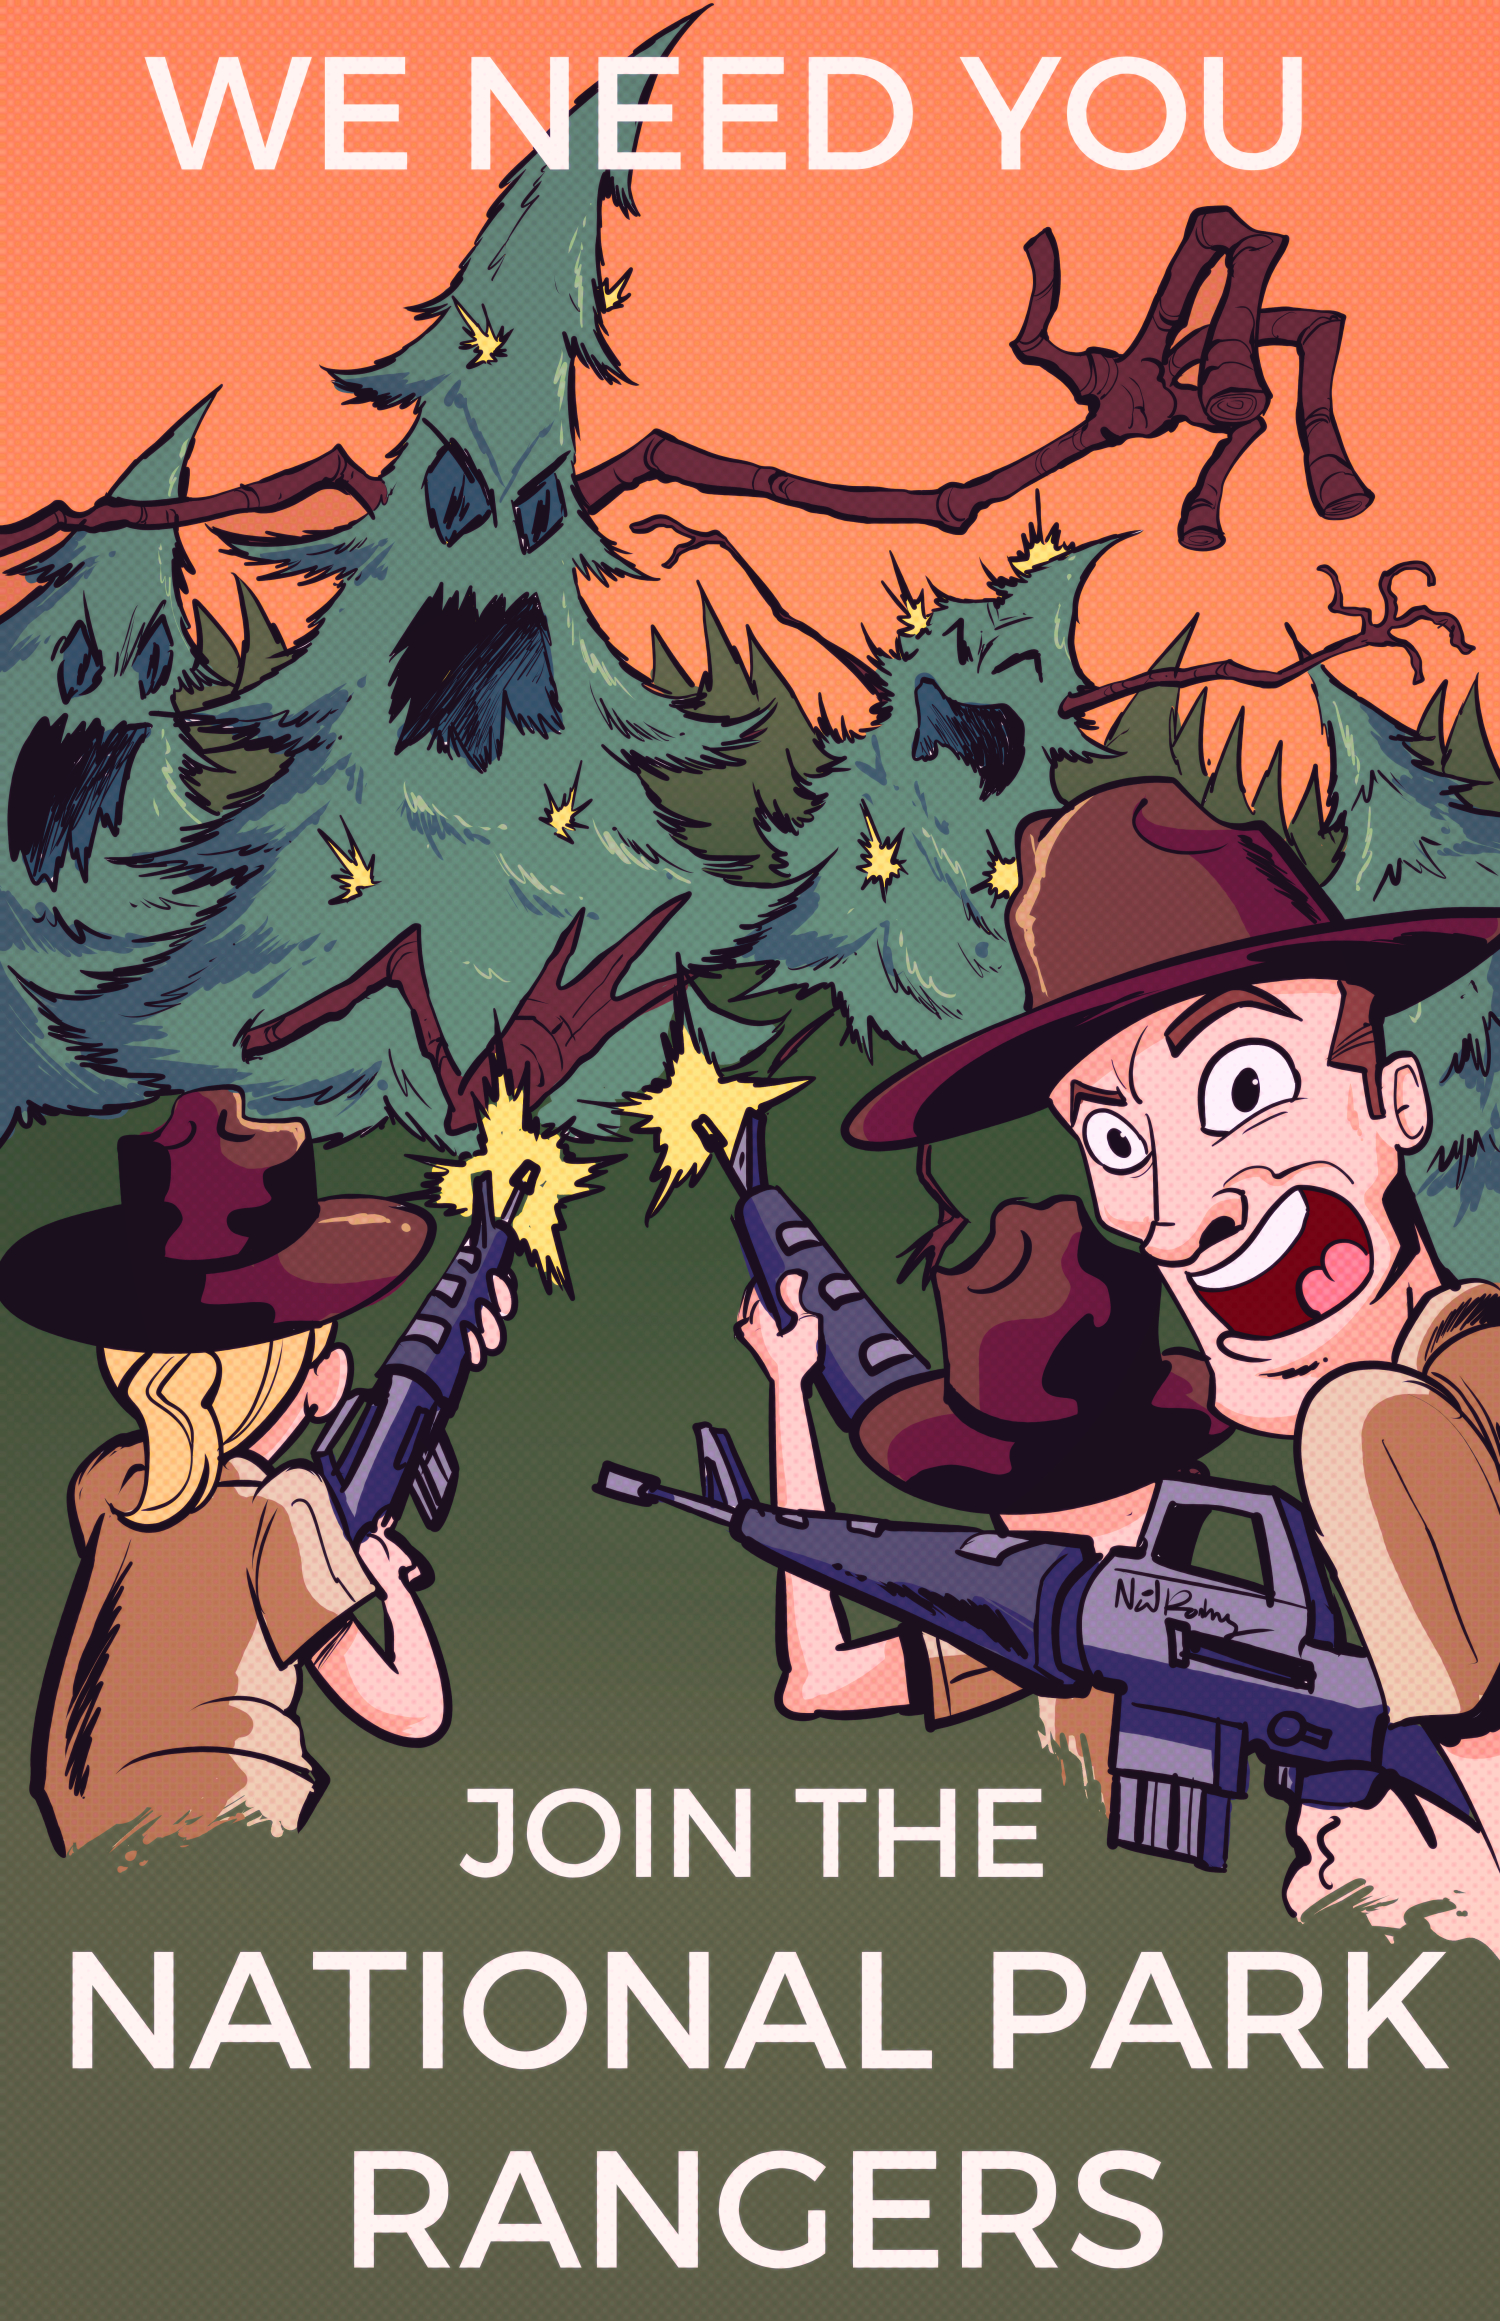 This is a 100% accurate representation of what park rangers do